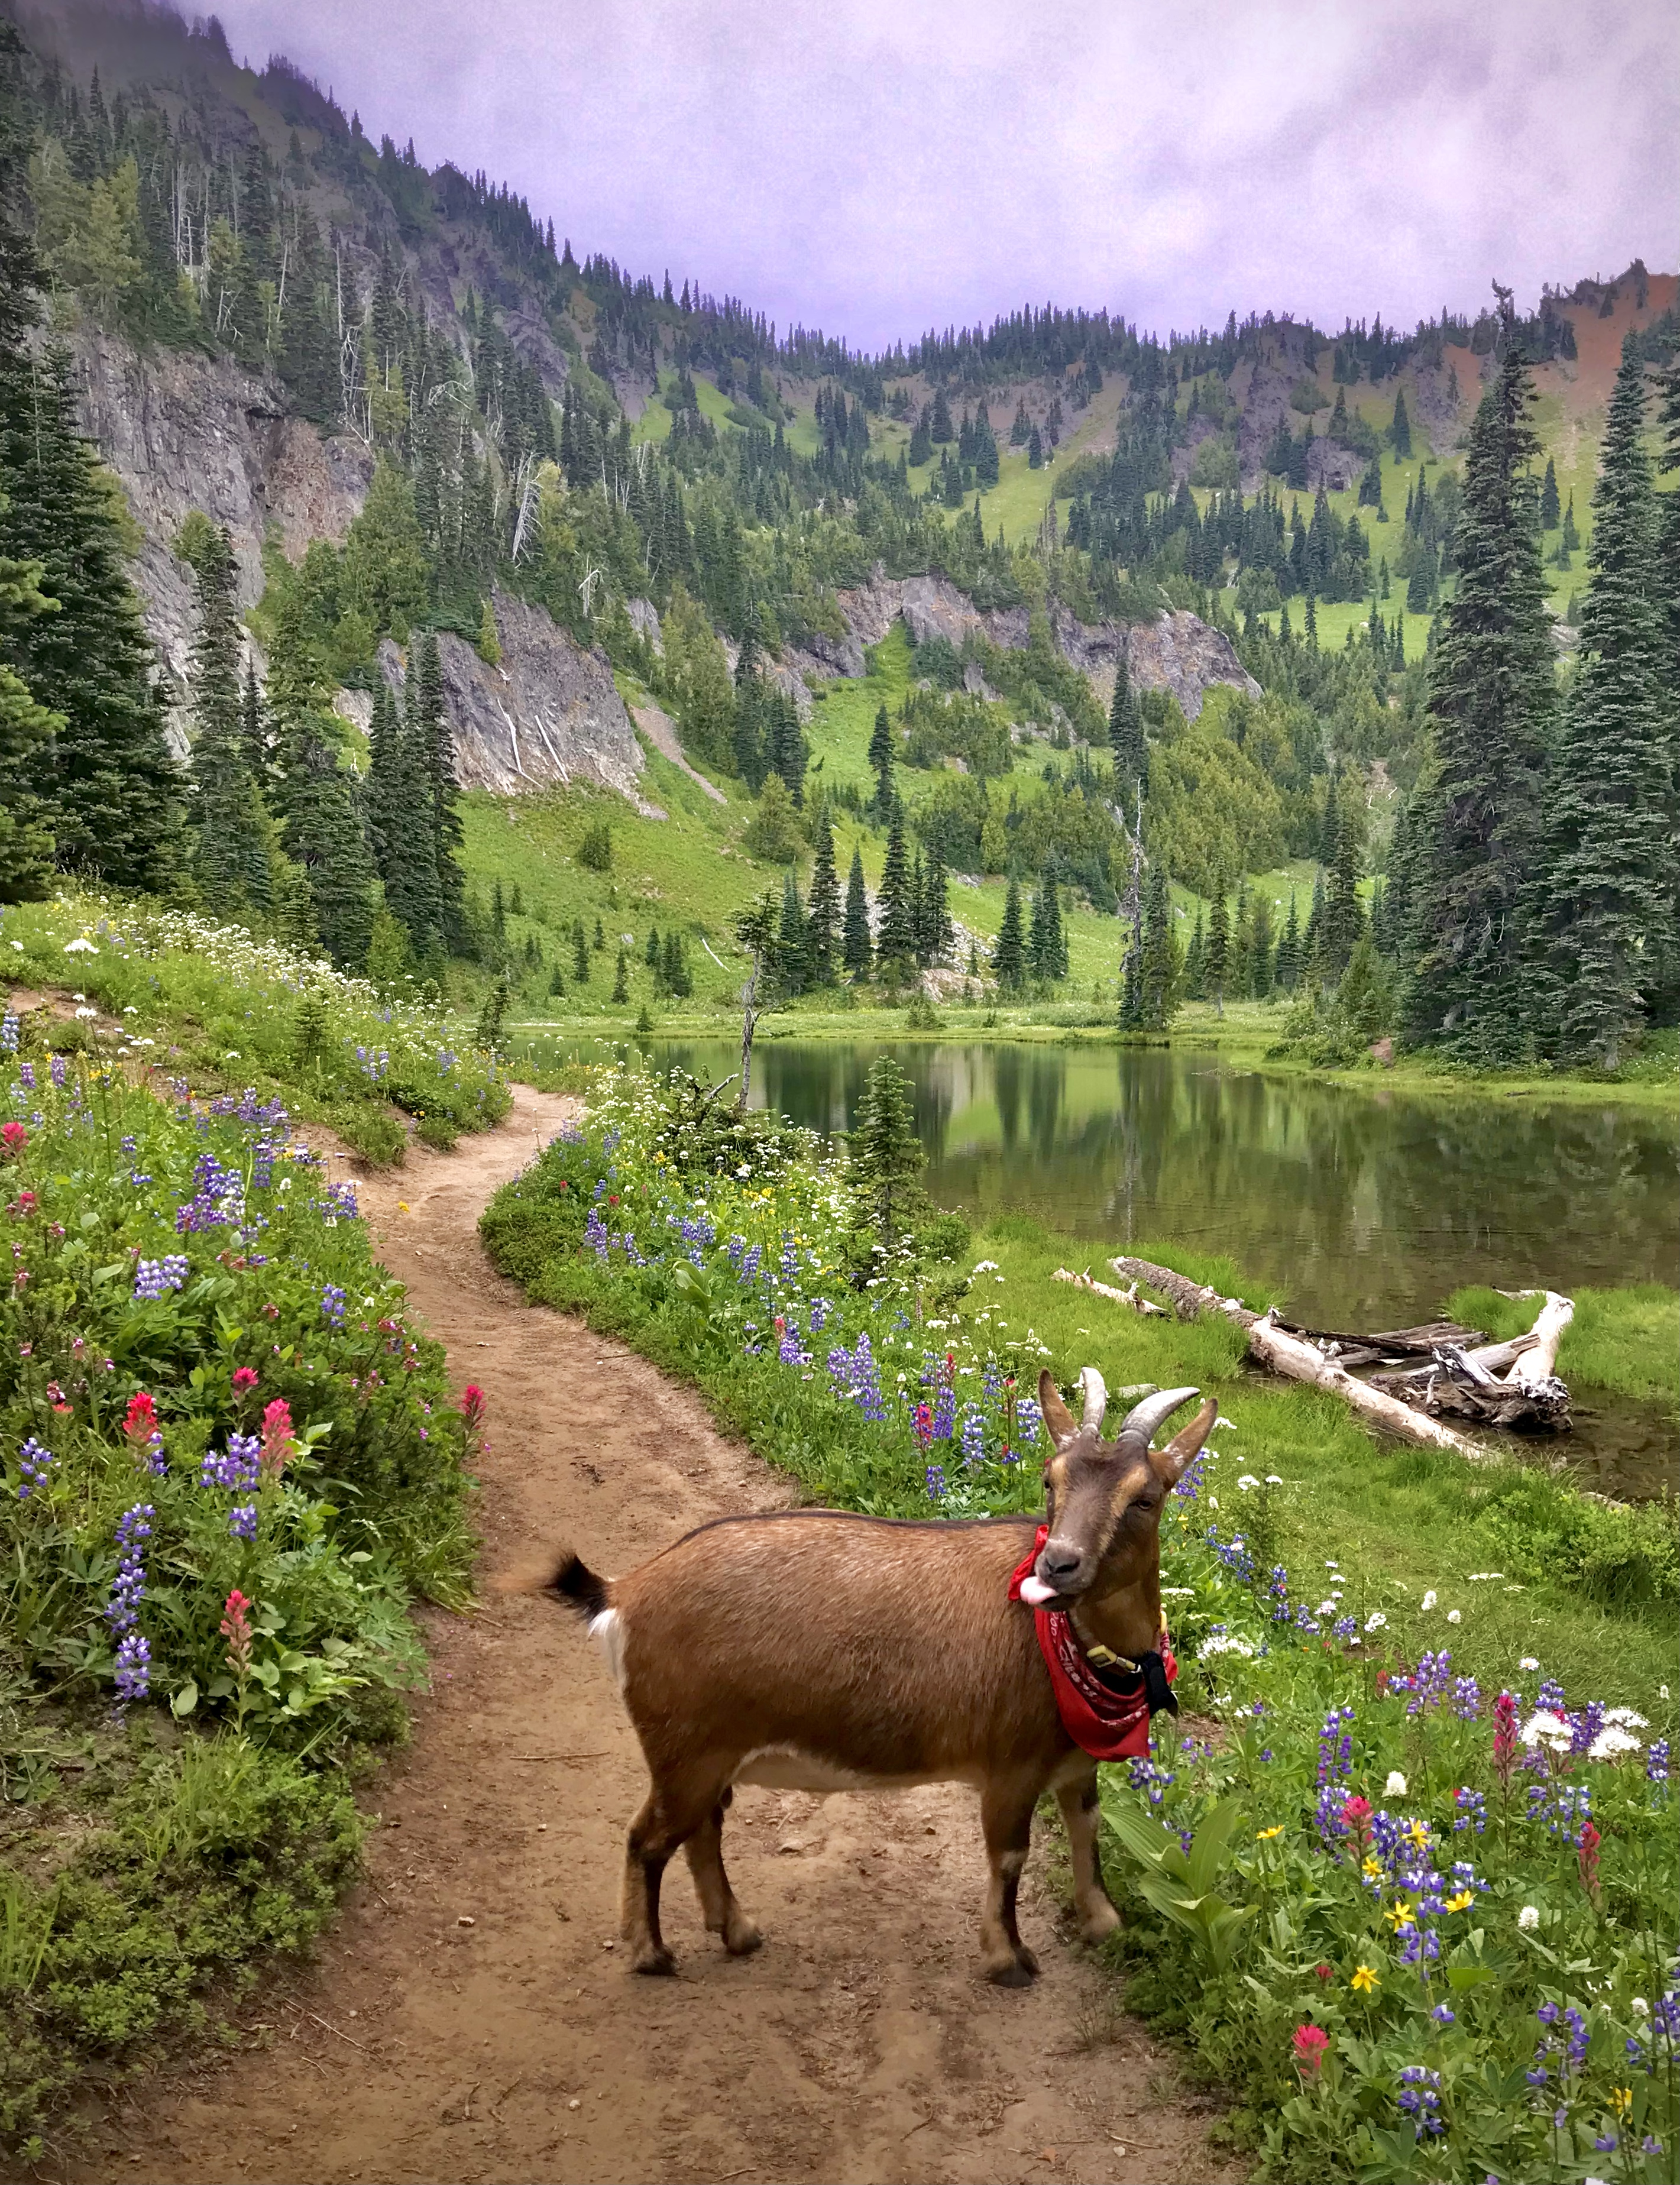 A goat on a lakeside trail.